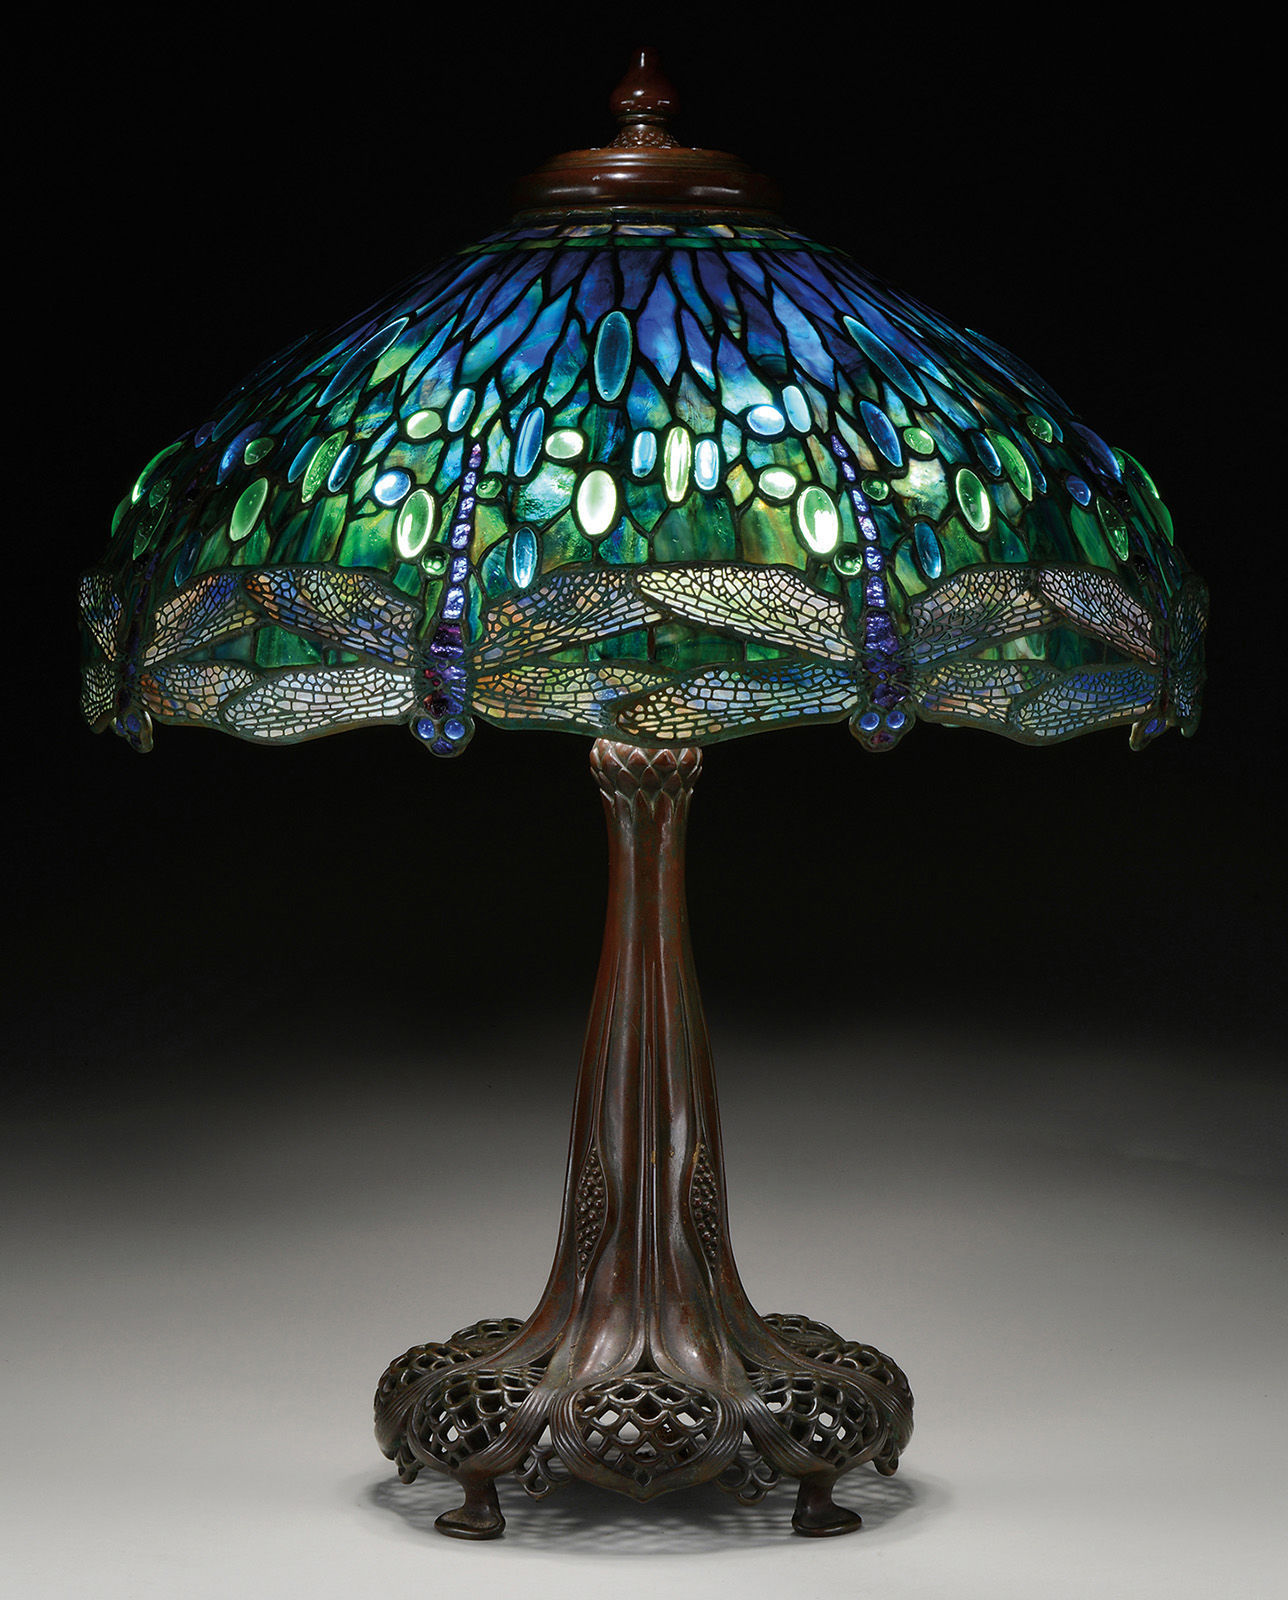 In The Early 1900s, The Dragonfly Theme, In Both Table And Floor Lamps, Was  A Favorite At Tiffany Studios.